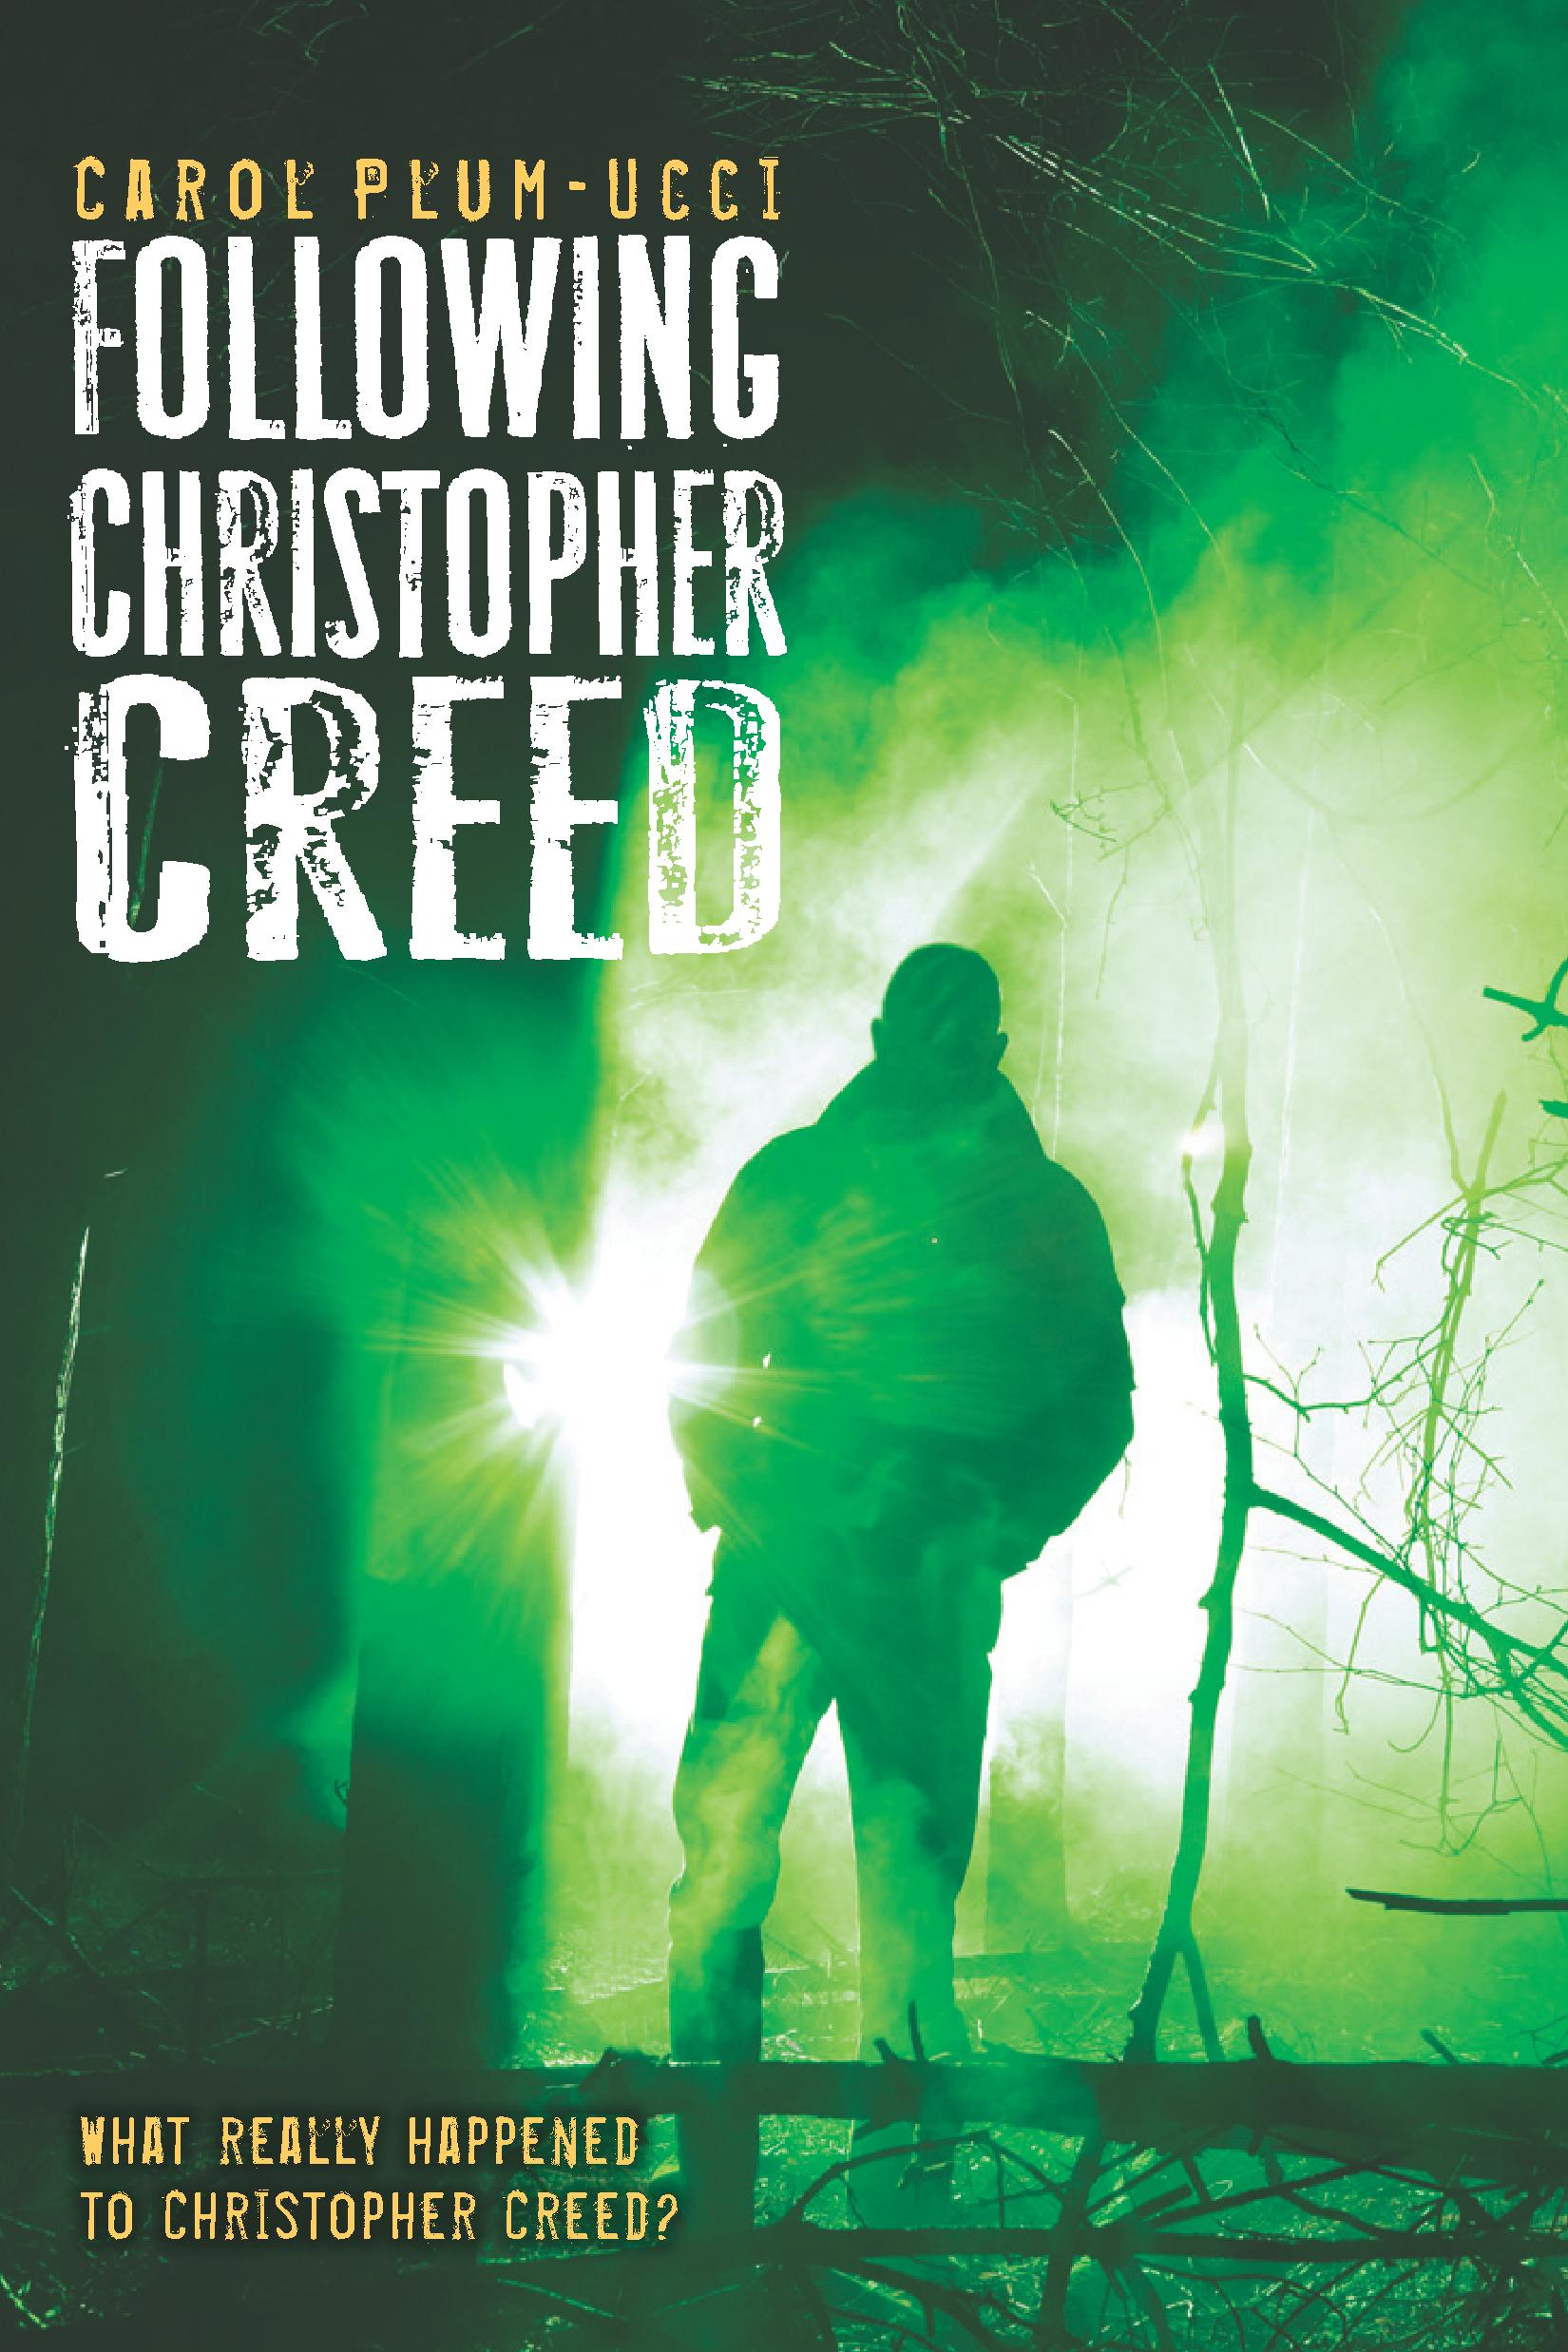 Following Christopher Creed By: Carol Plum-Ucci